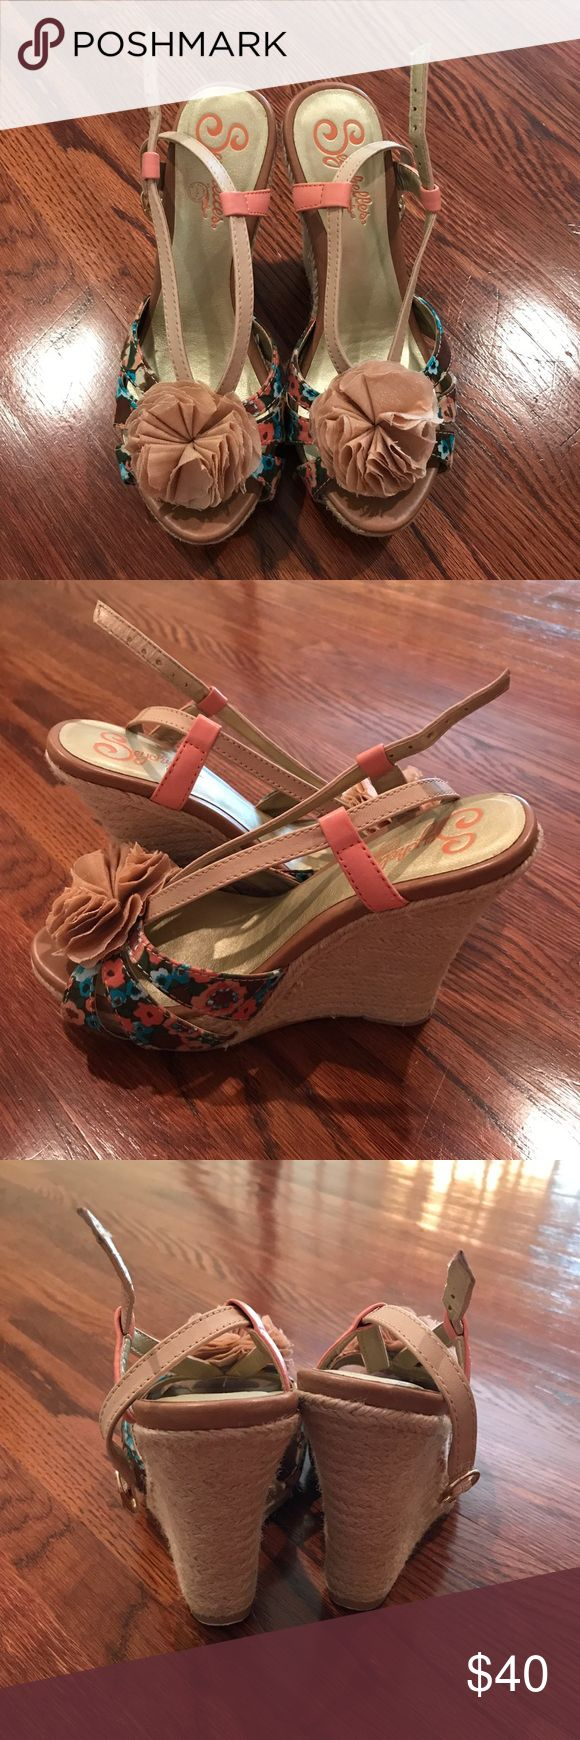 Seychelles Wedge Sandals! These Seychelles Wedge Sandals have a pretty floral pattern with flower detail on the front of the shoe, perfect for Spring, Summer, and into Fall! Minimal wear-they run a little small which is why I am selling. 4 1/2 inch wedge with 1 inch platform. Seychelles Shoes Wedges